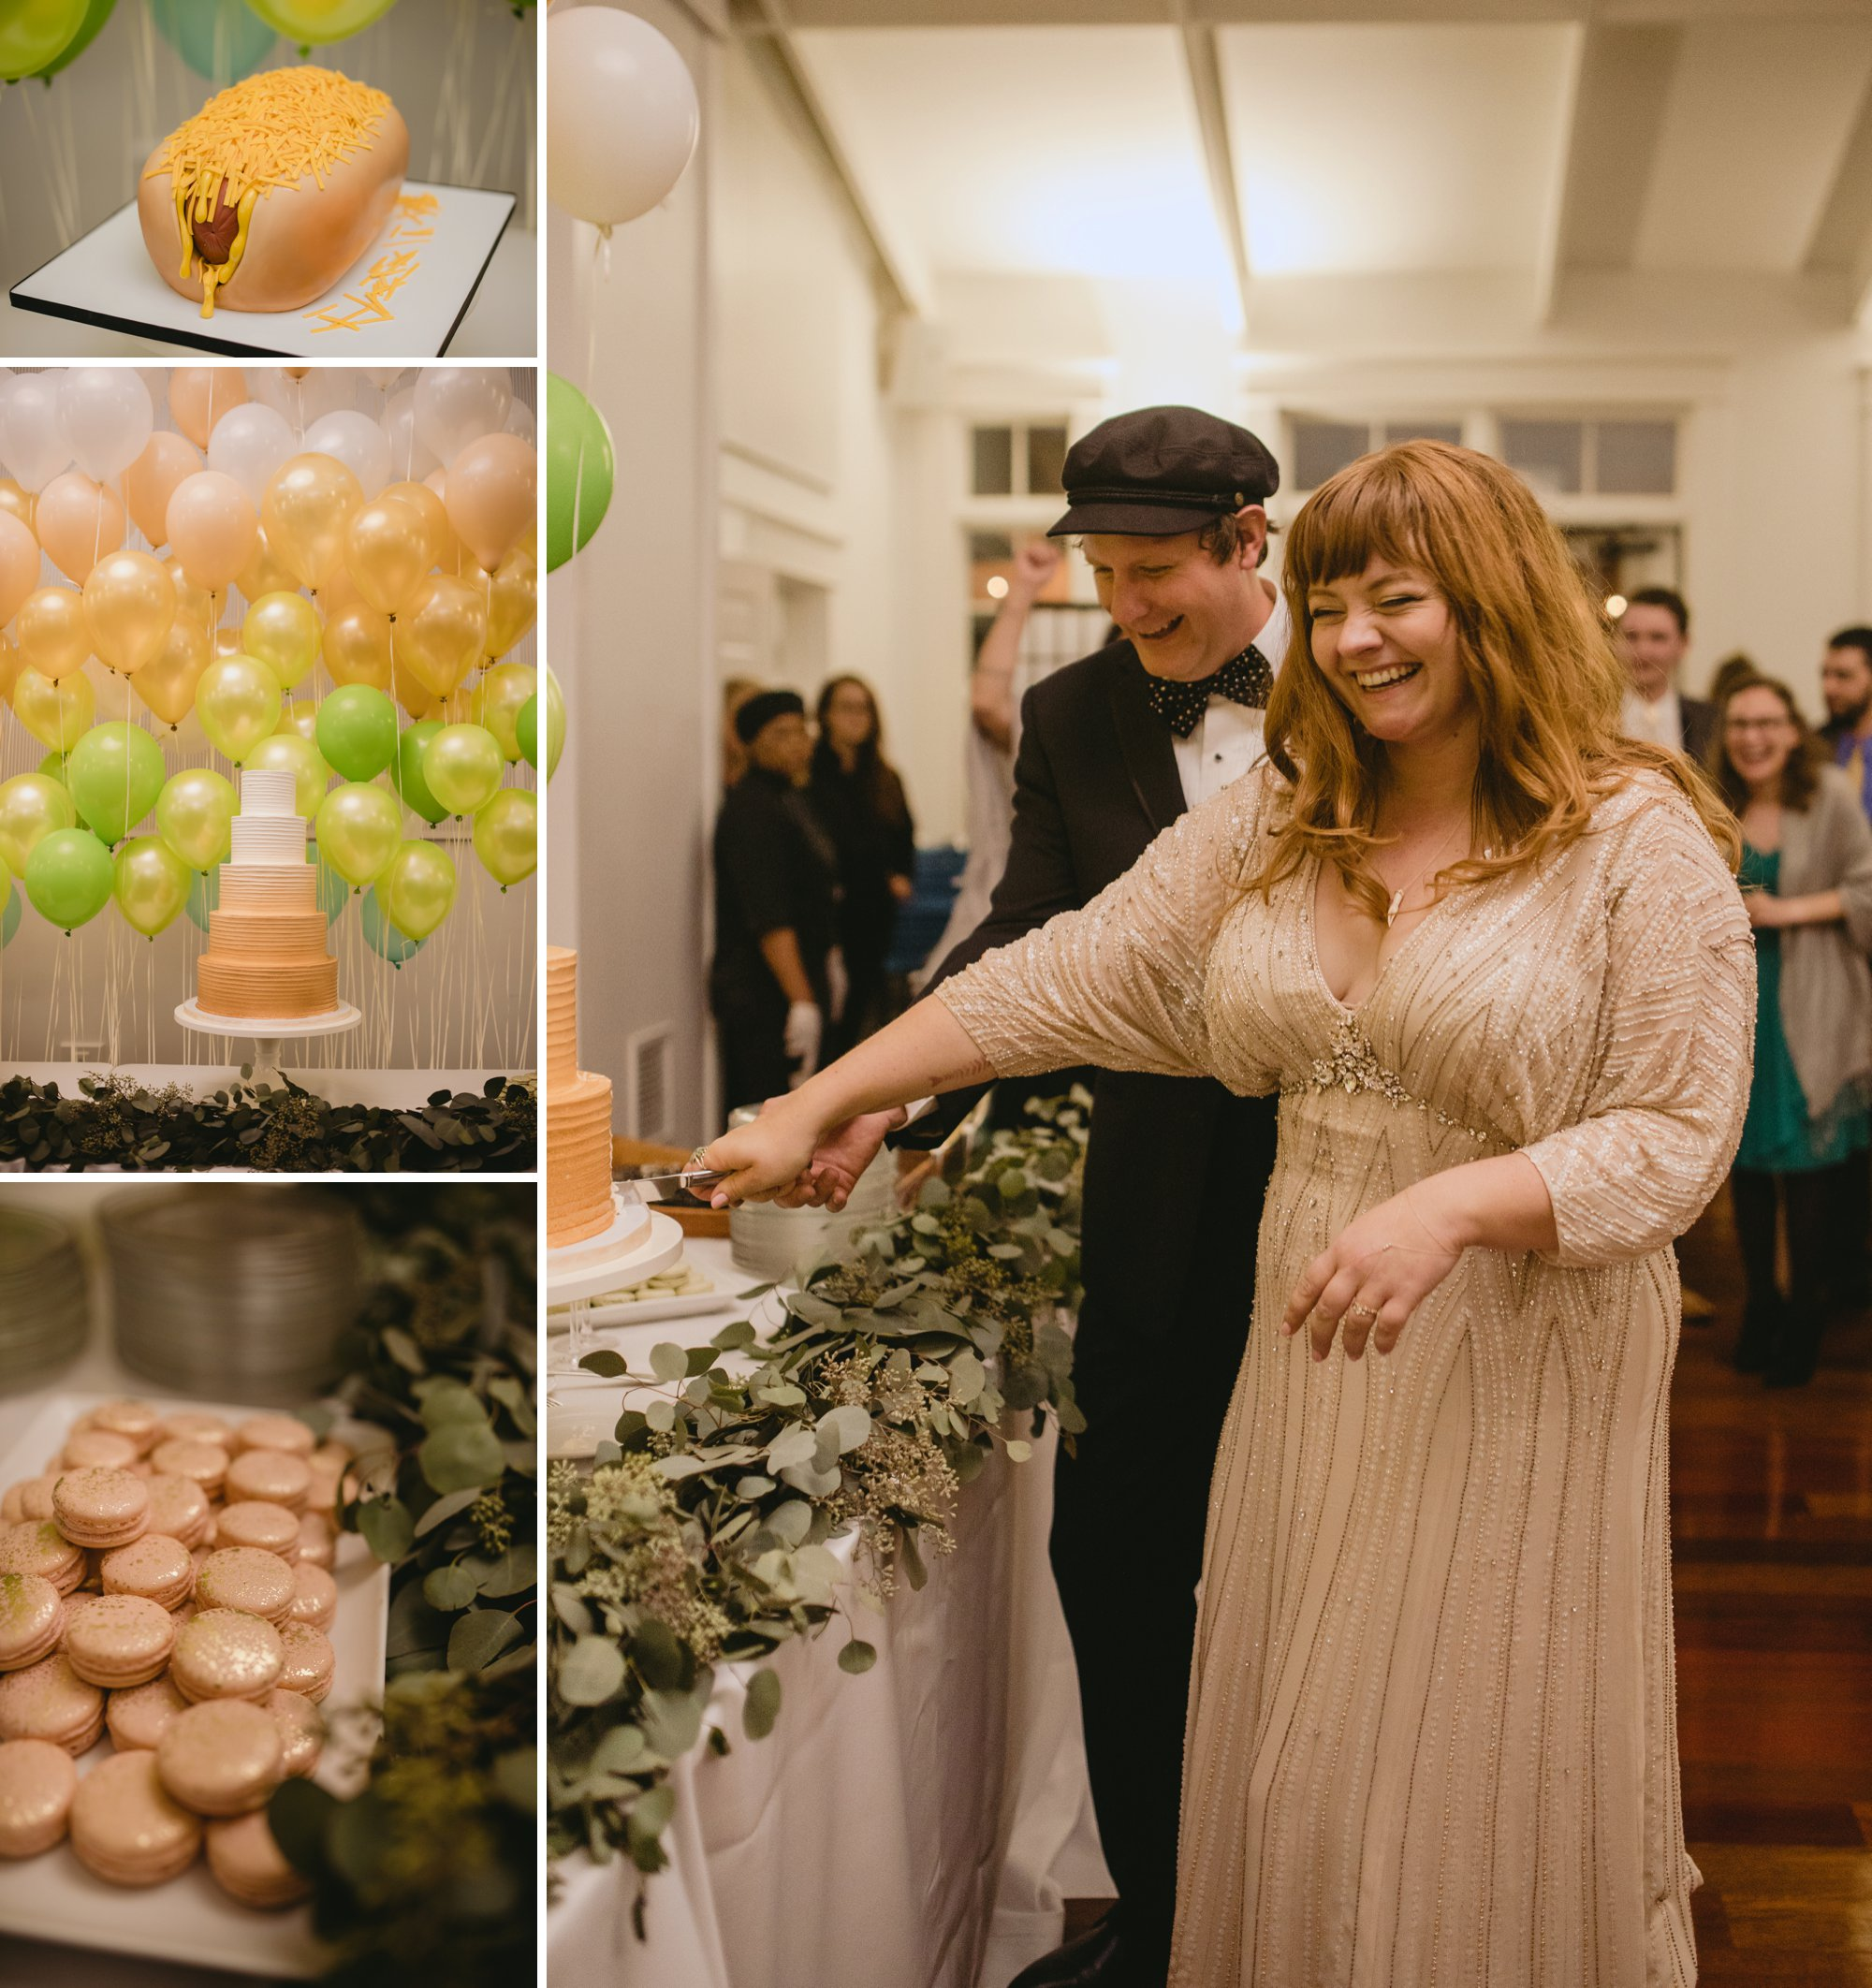 Autumn Richmond VA winery wedding at Upper Shirley Vineyards with lush garden florals and old Hollywood glamour cake